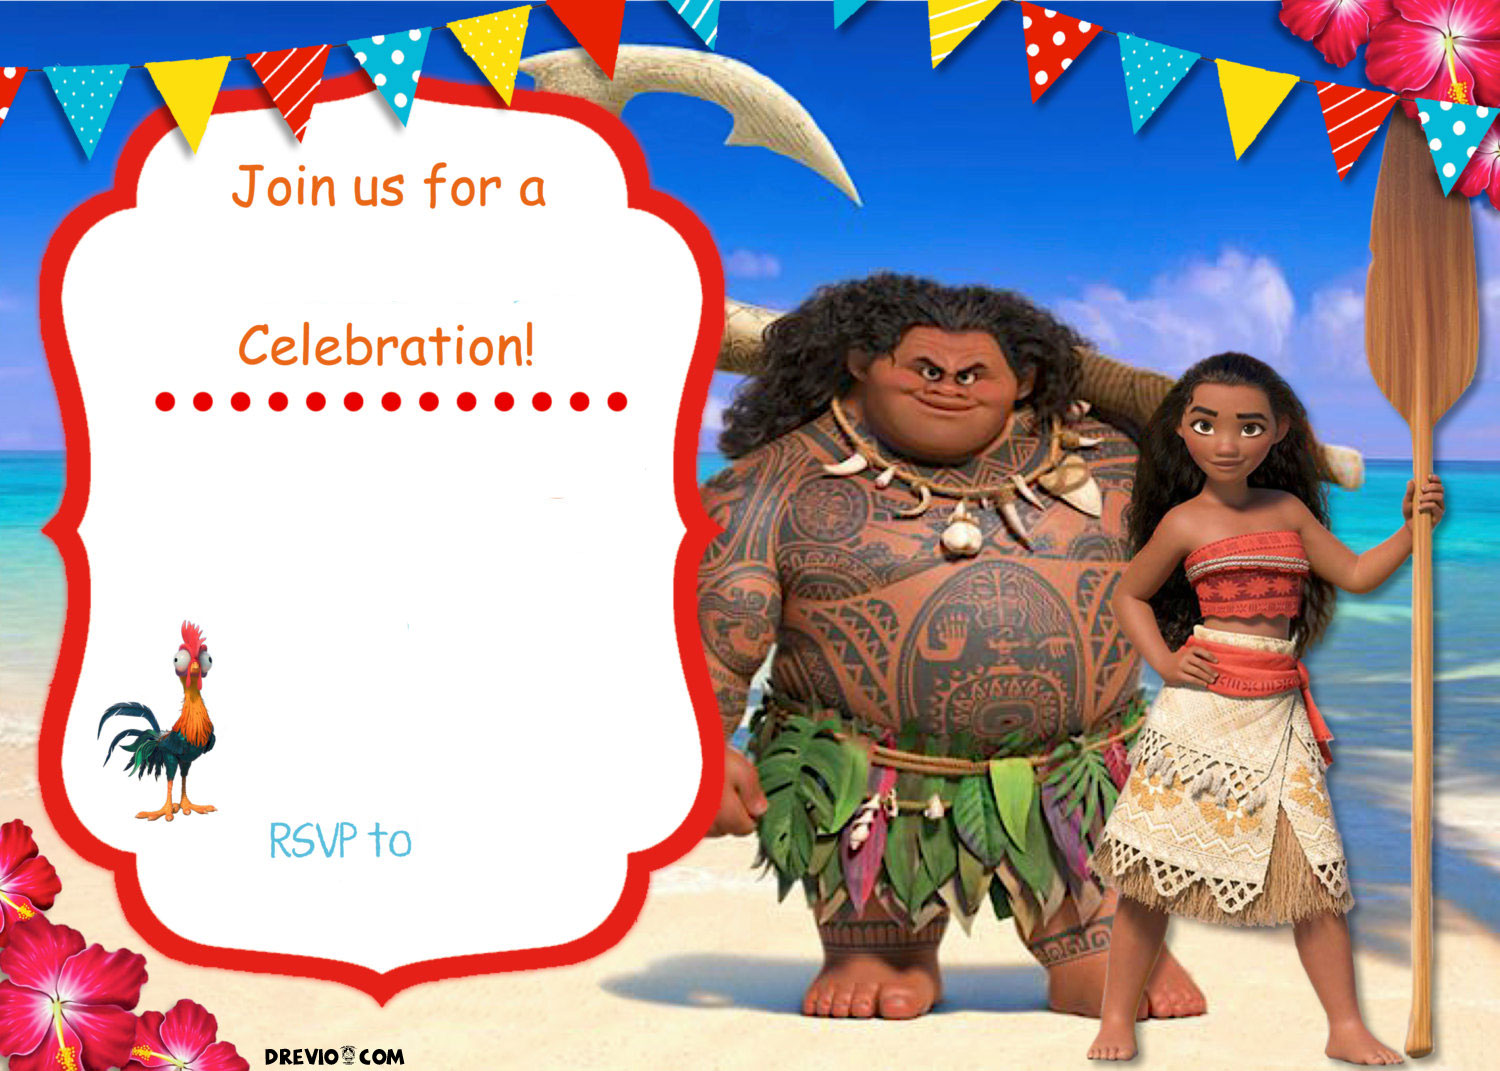 Free Moana Birthday Invitation Template | FREE Invitation